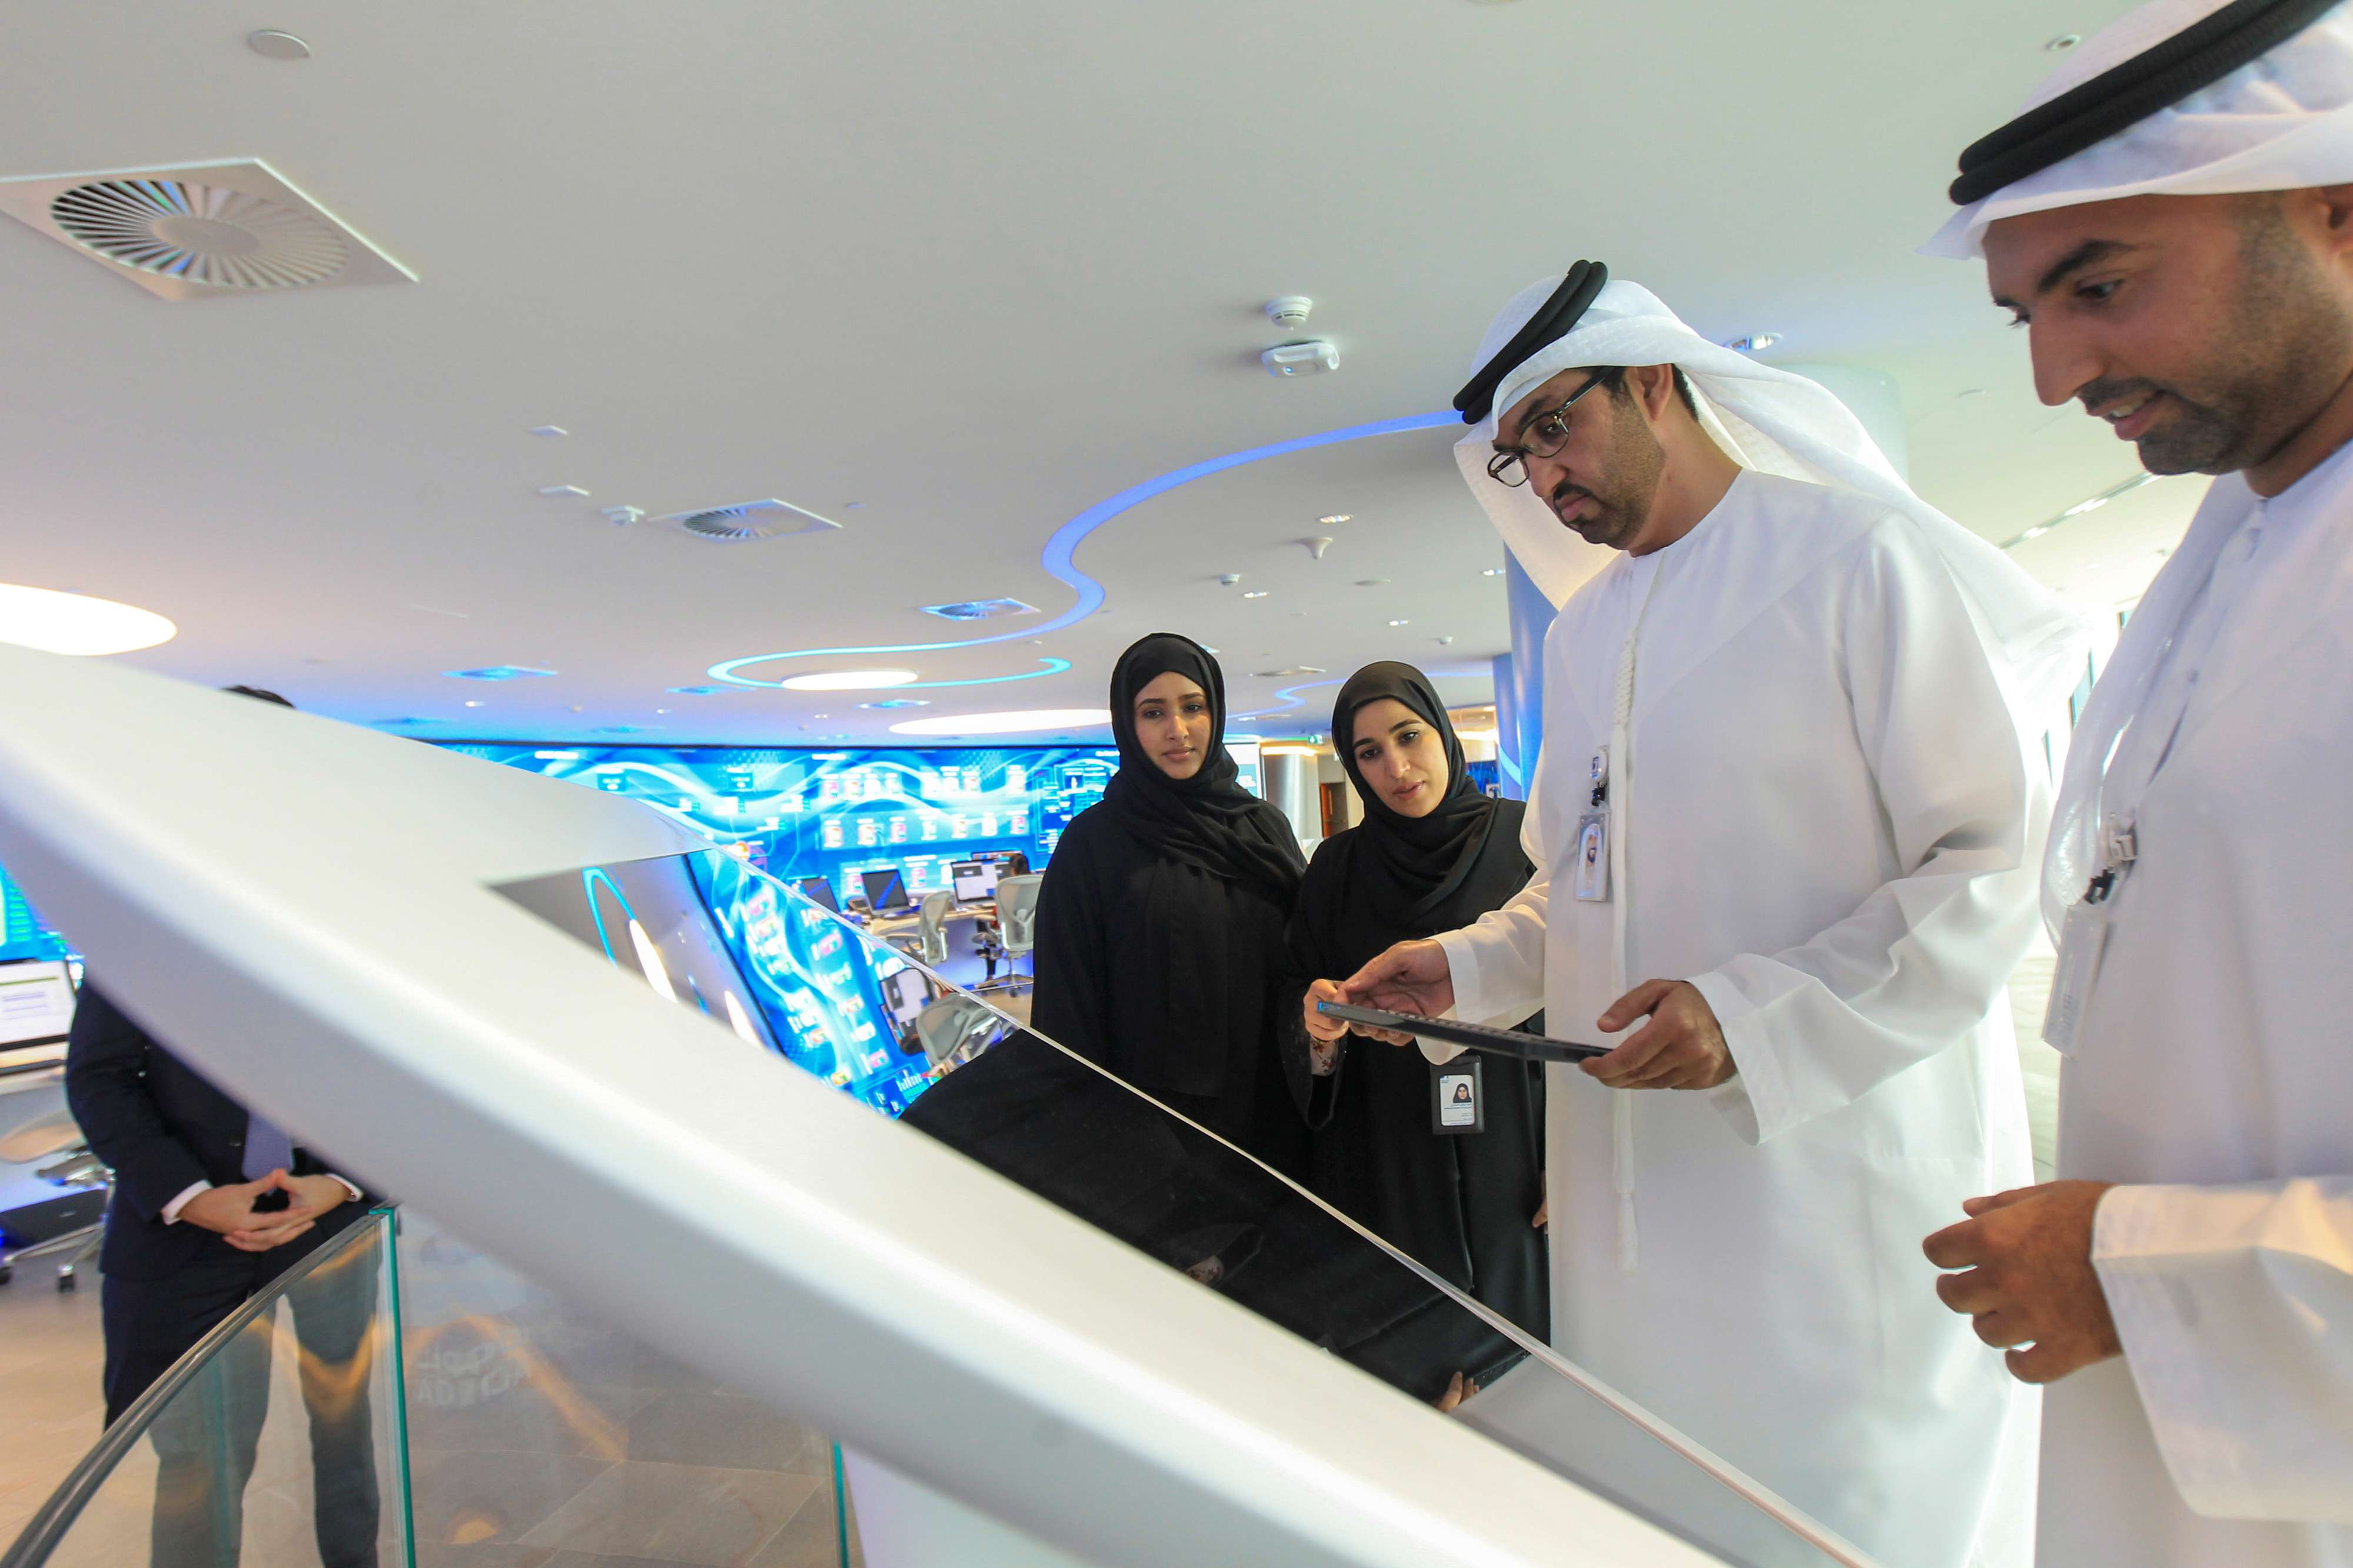 Sultan Ahmed Al Jaber, UAE Minister of State and the Abu Dhabi National Oil Company (ADNOC) Group CEO talks to employees at the Panorama Digital Command Centre at the ADNOC headquarters in Abu Dhabi, UAE December 10, 2019. (Reuters)